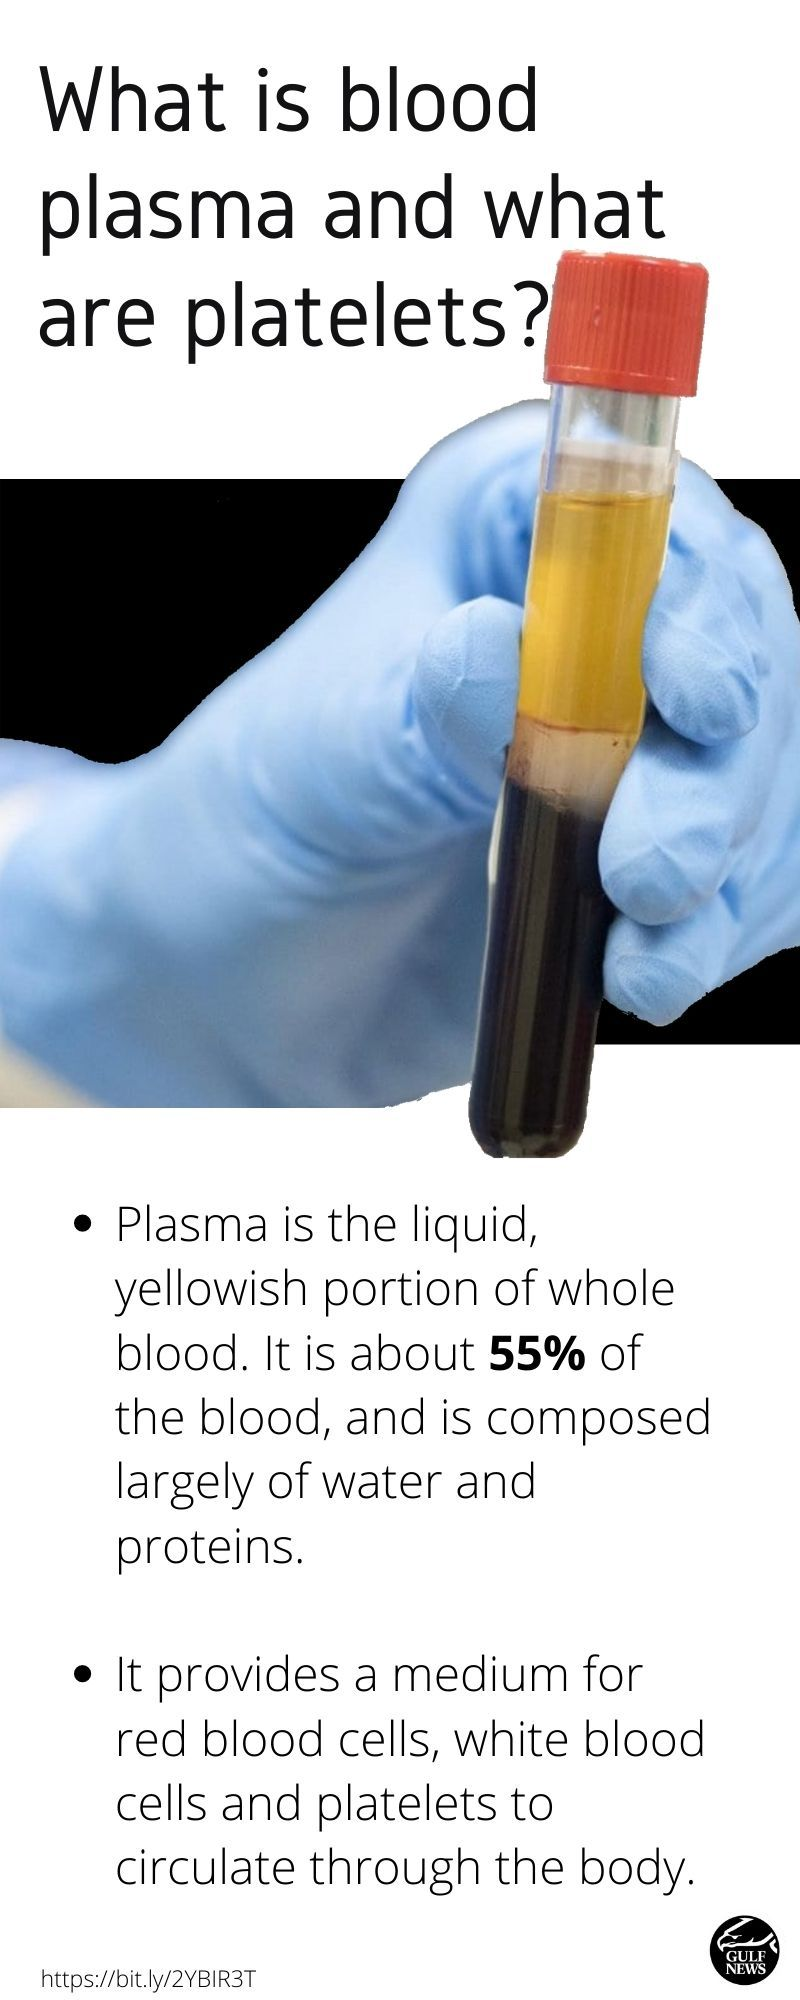 Plasma and platelets